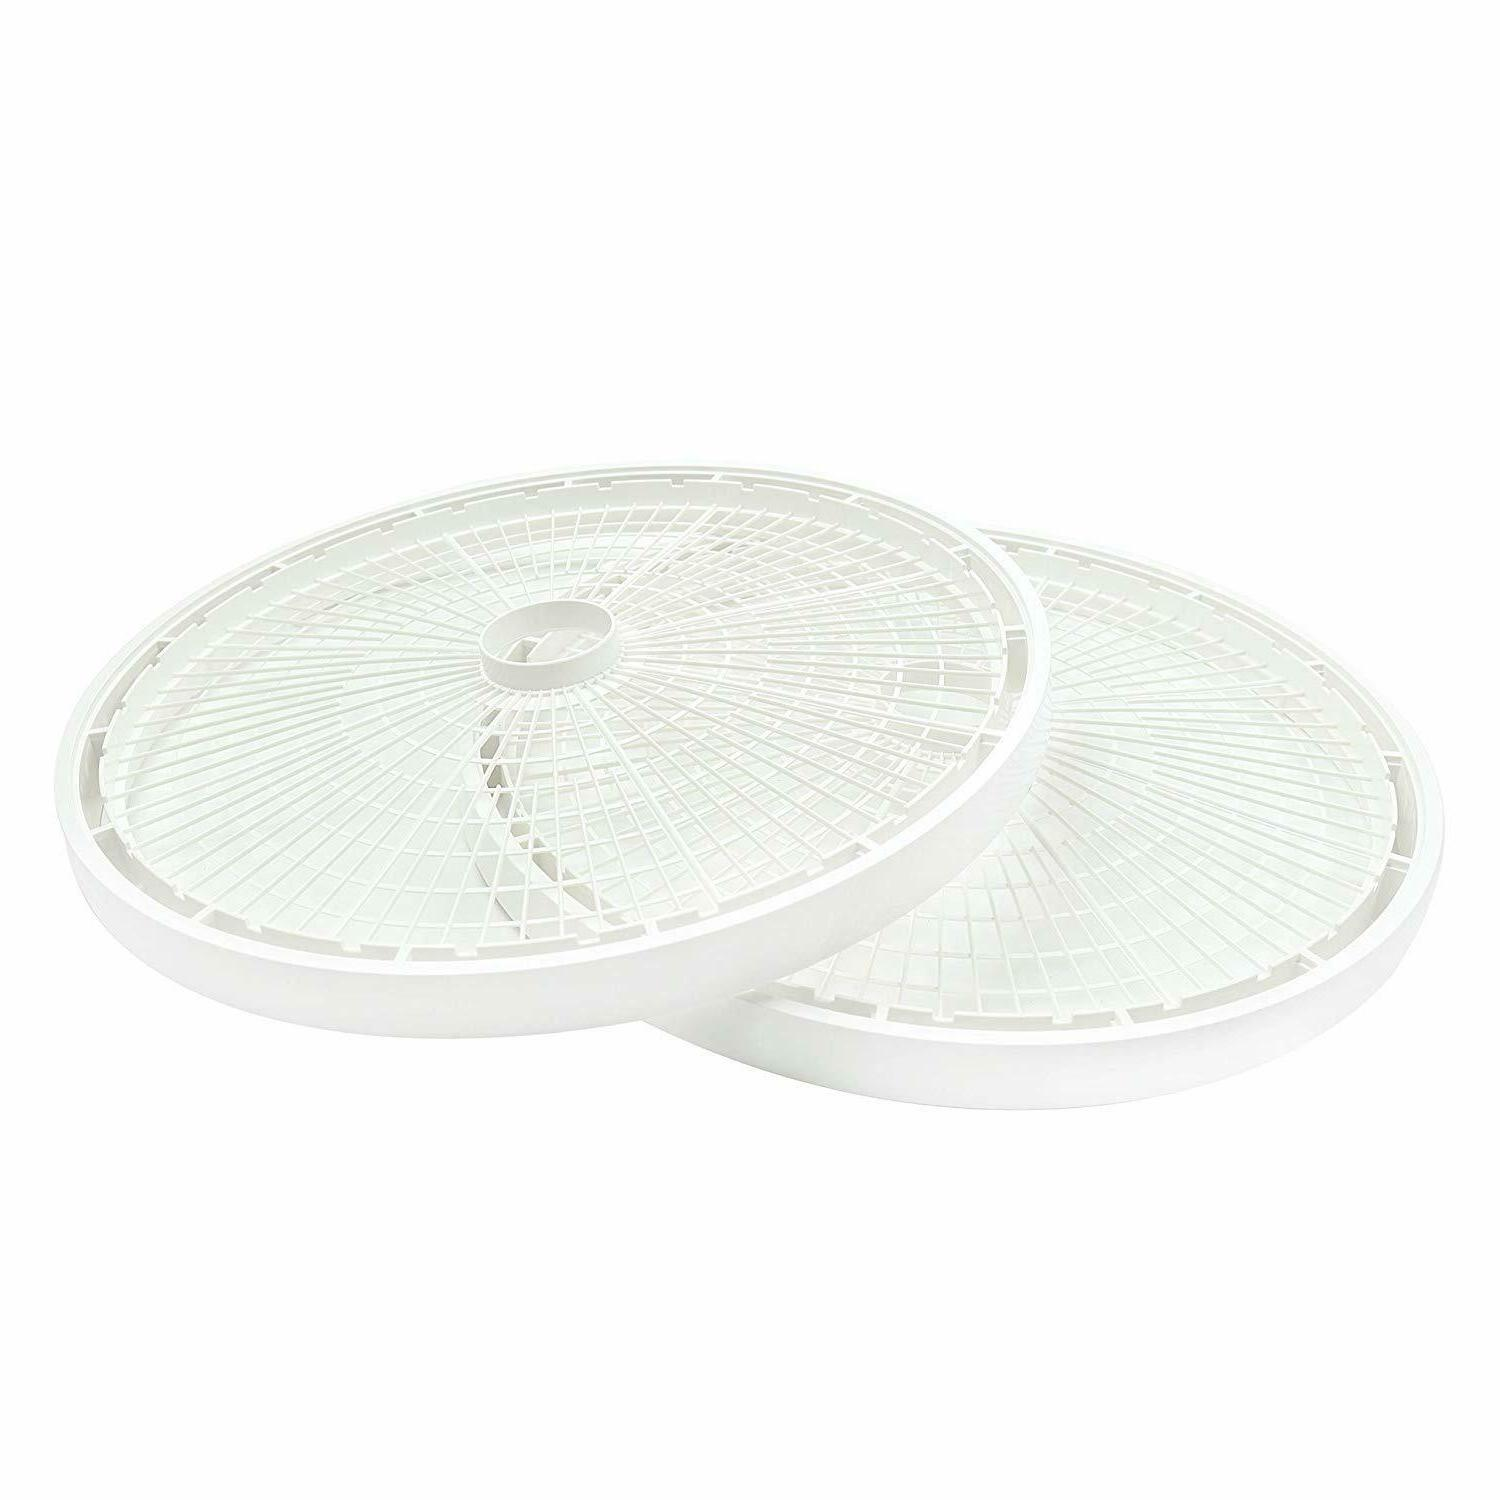 Nesco American Harvest Add dehydrator tray,